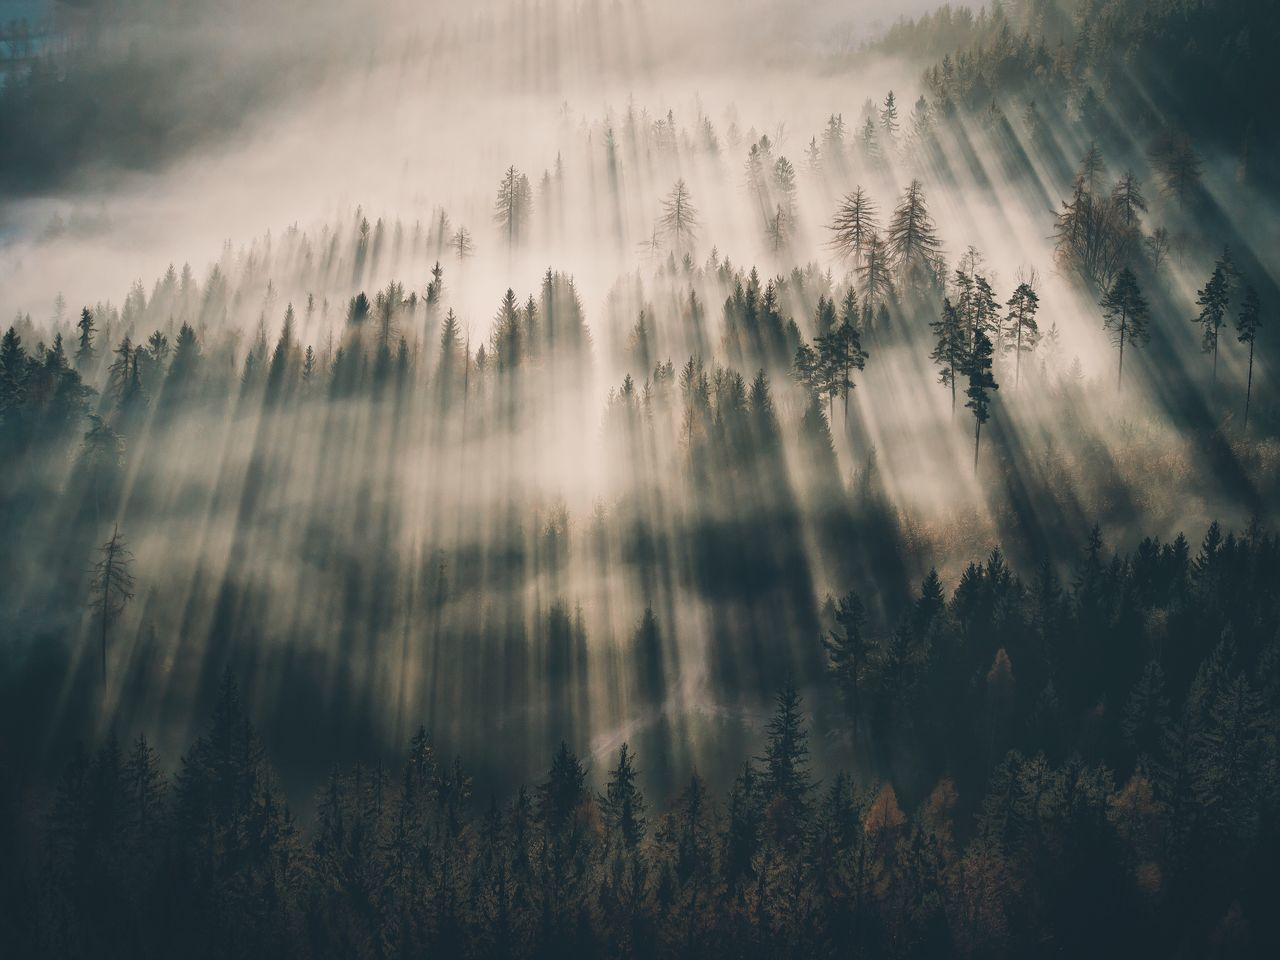 Nature Tranquility Beauty In Nature Scenics No People Tree Outdoors Idyllic Growth Forest Fog Tranquil Scene Day Water Sky Close-up